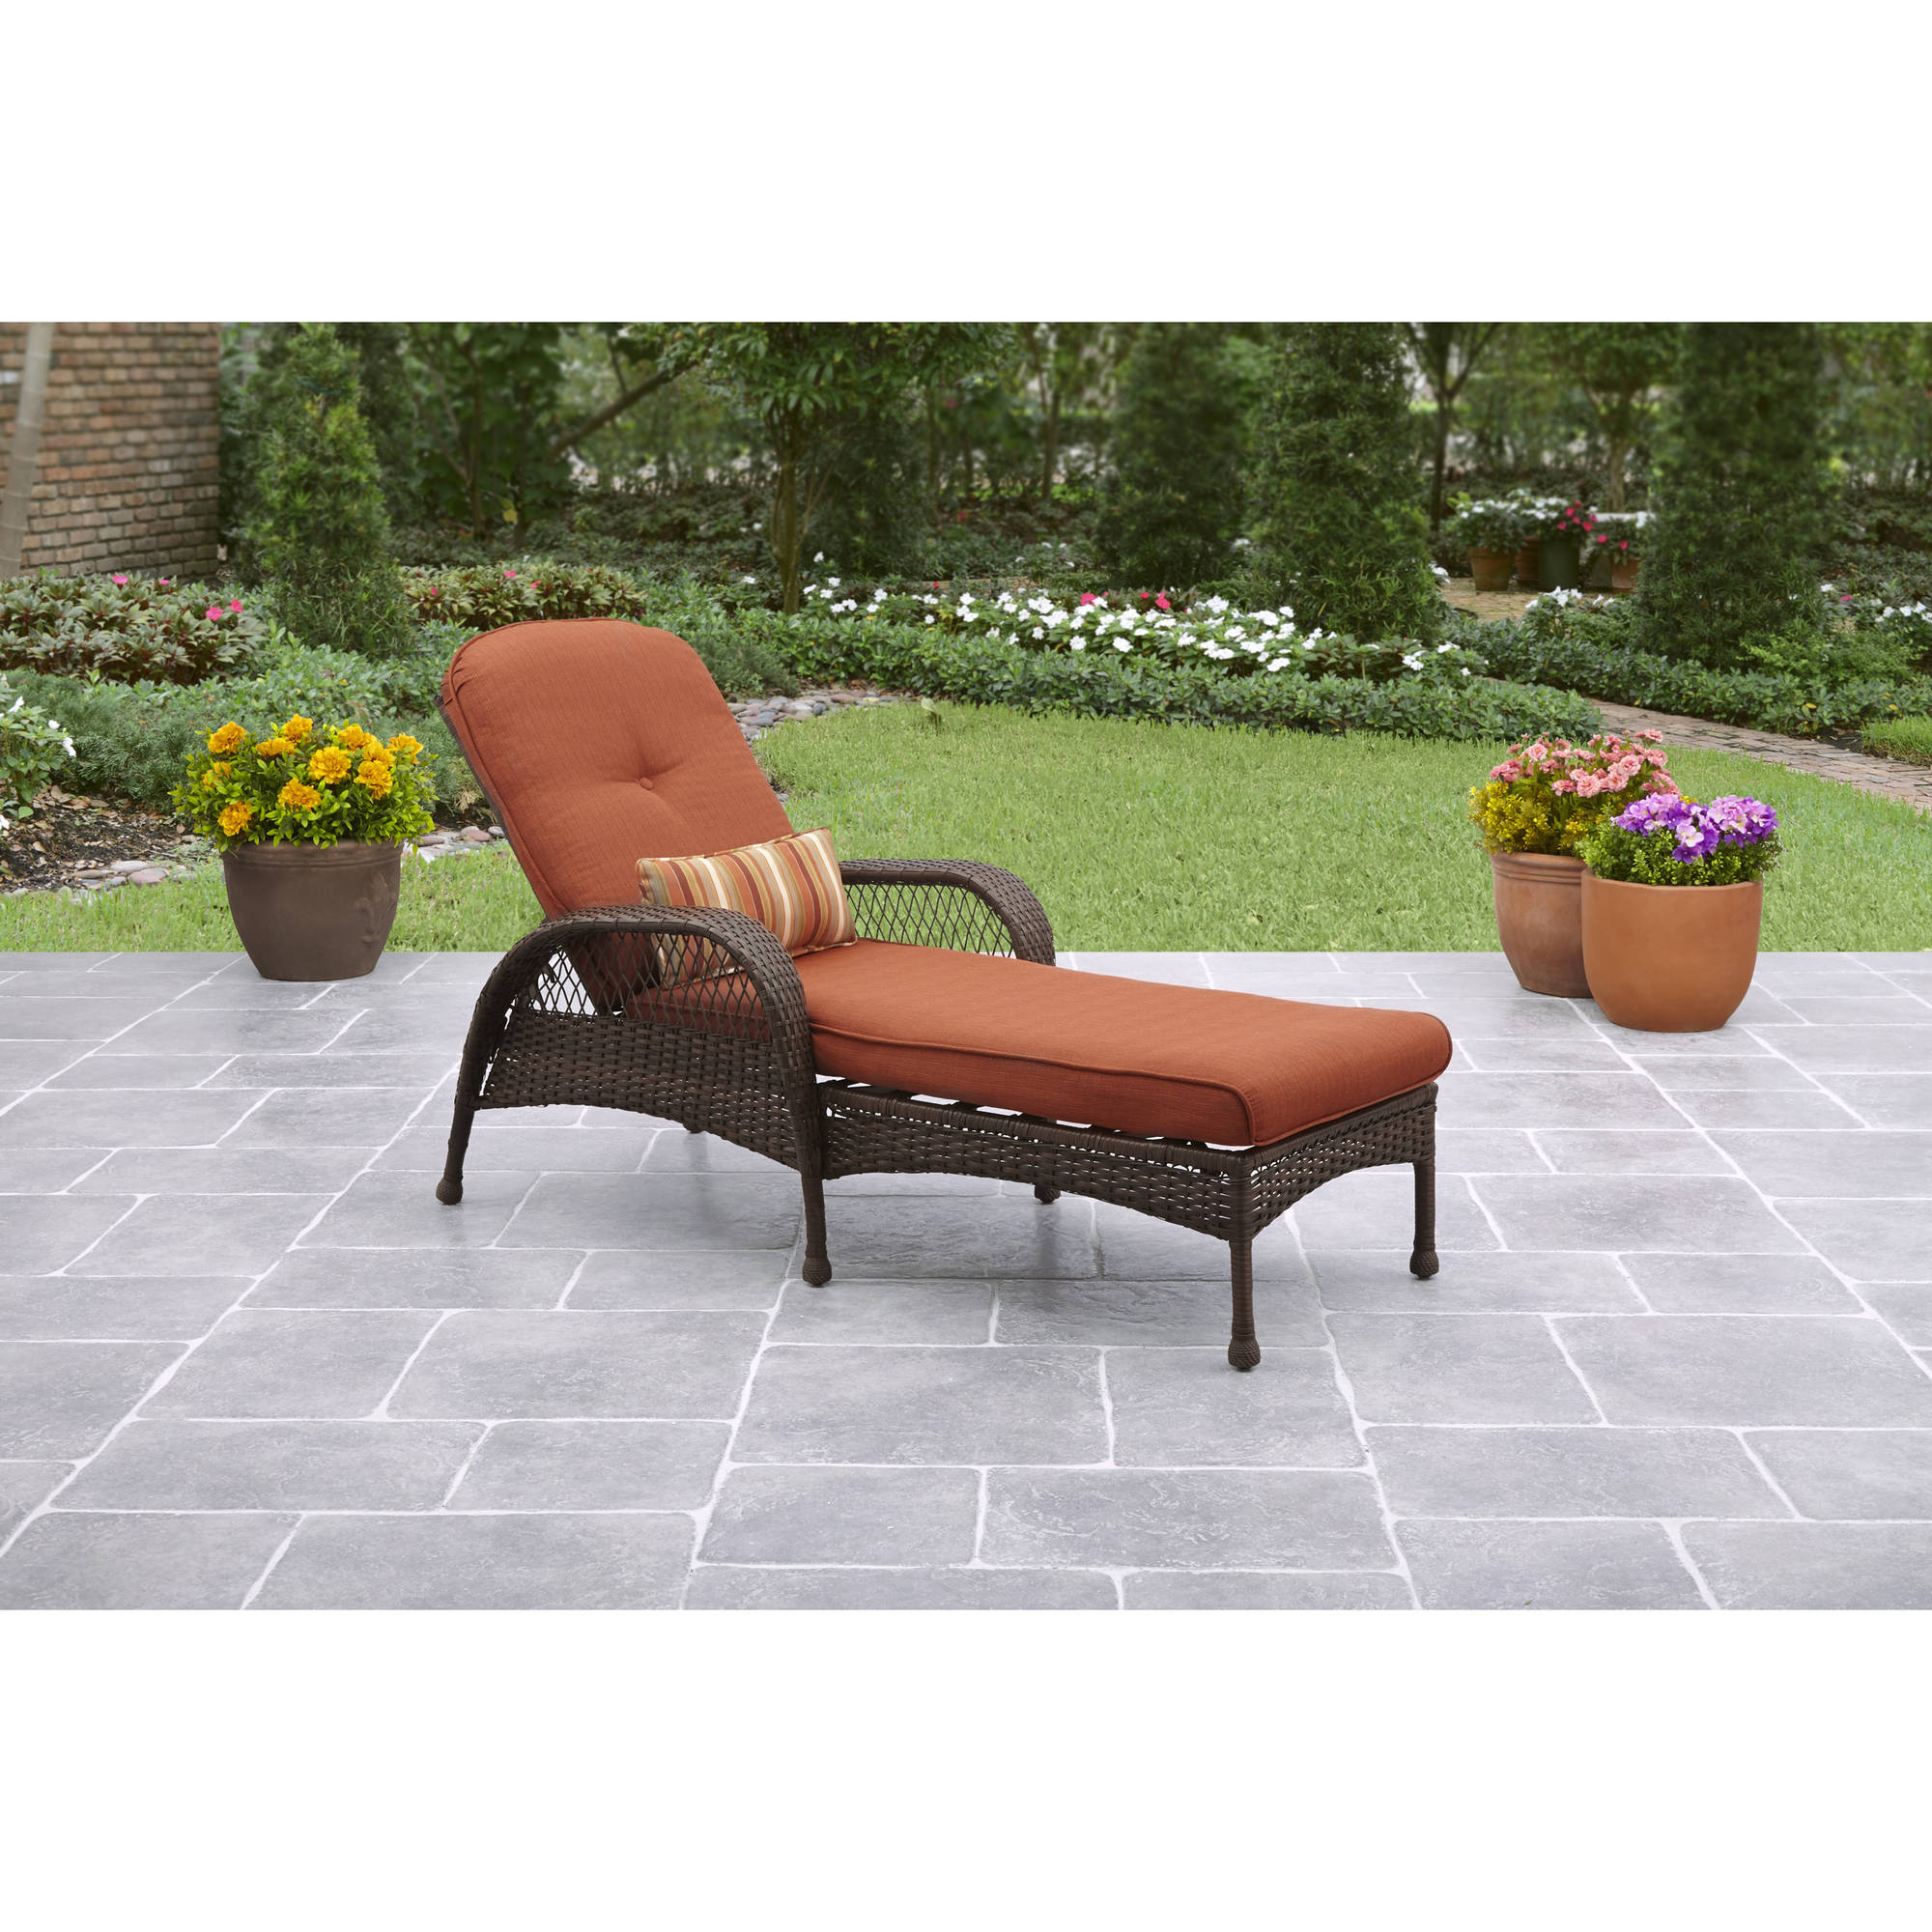 Better Homes and Gardens Azalea Ridge Outdoor Chaise Lounge by Generic